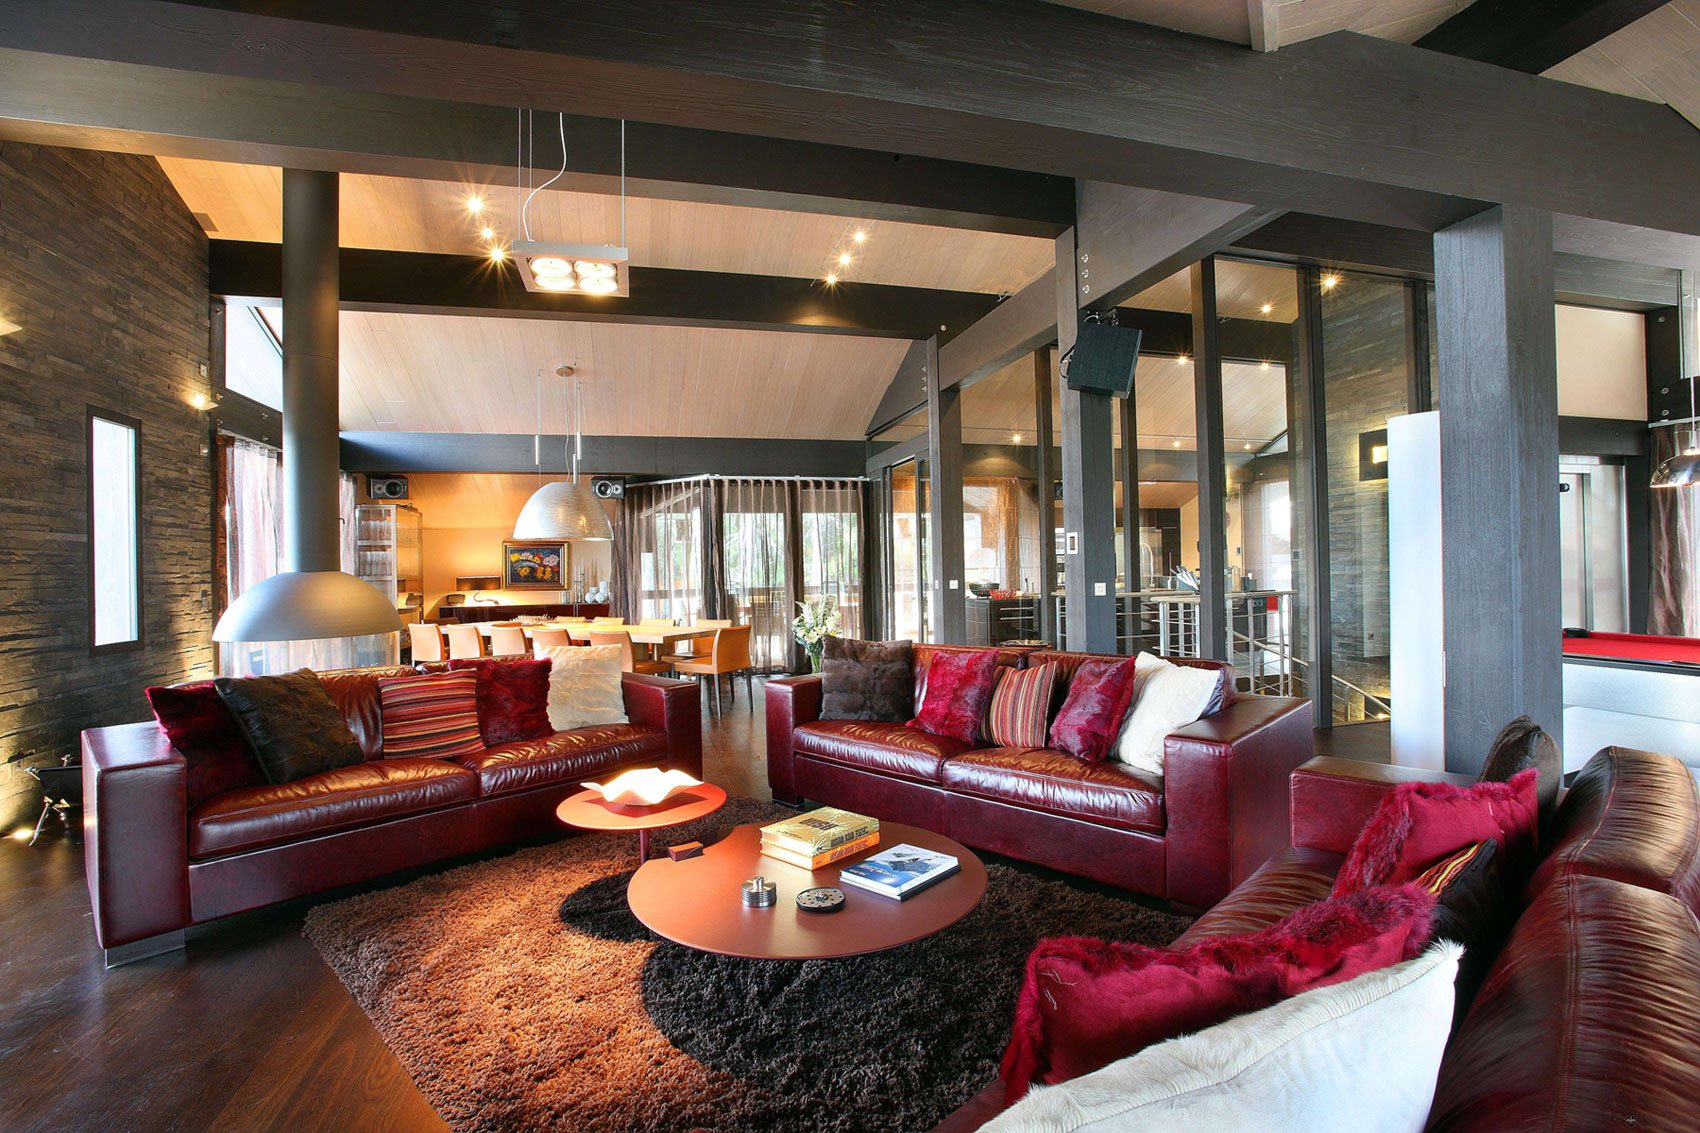 The Luxury Chalet E 1850 in Courchevel, French Alps